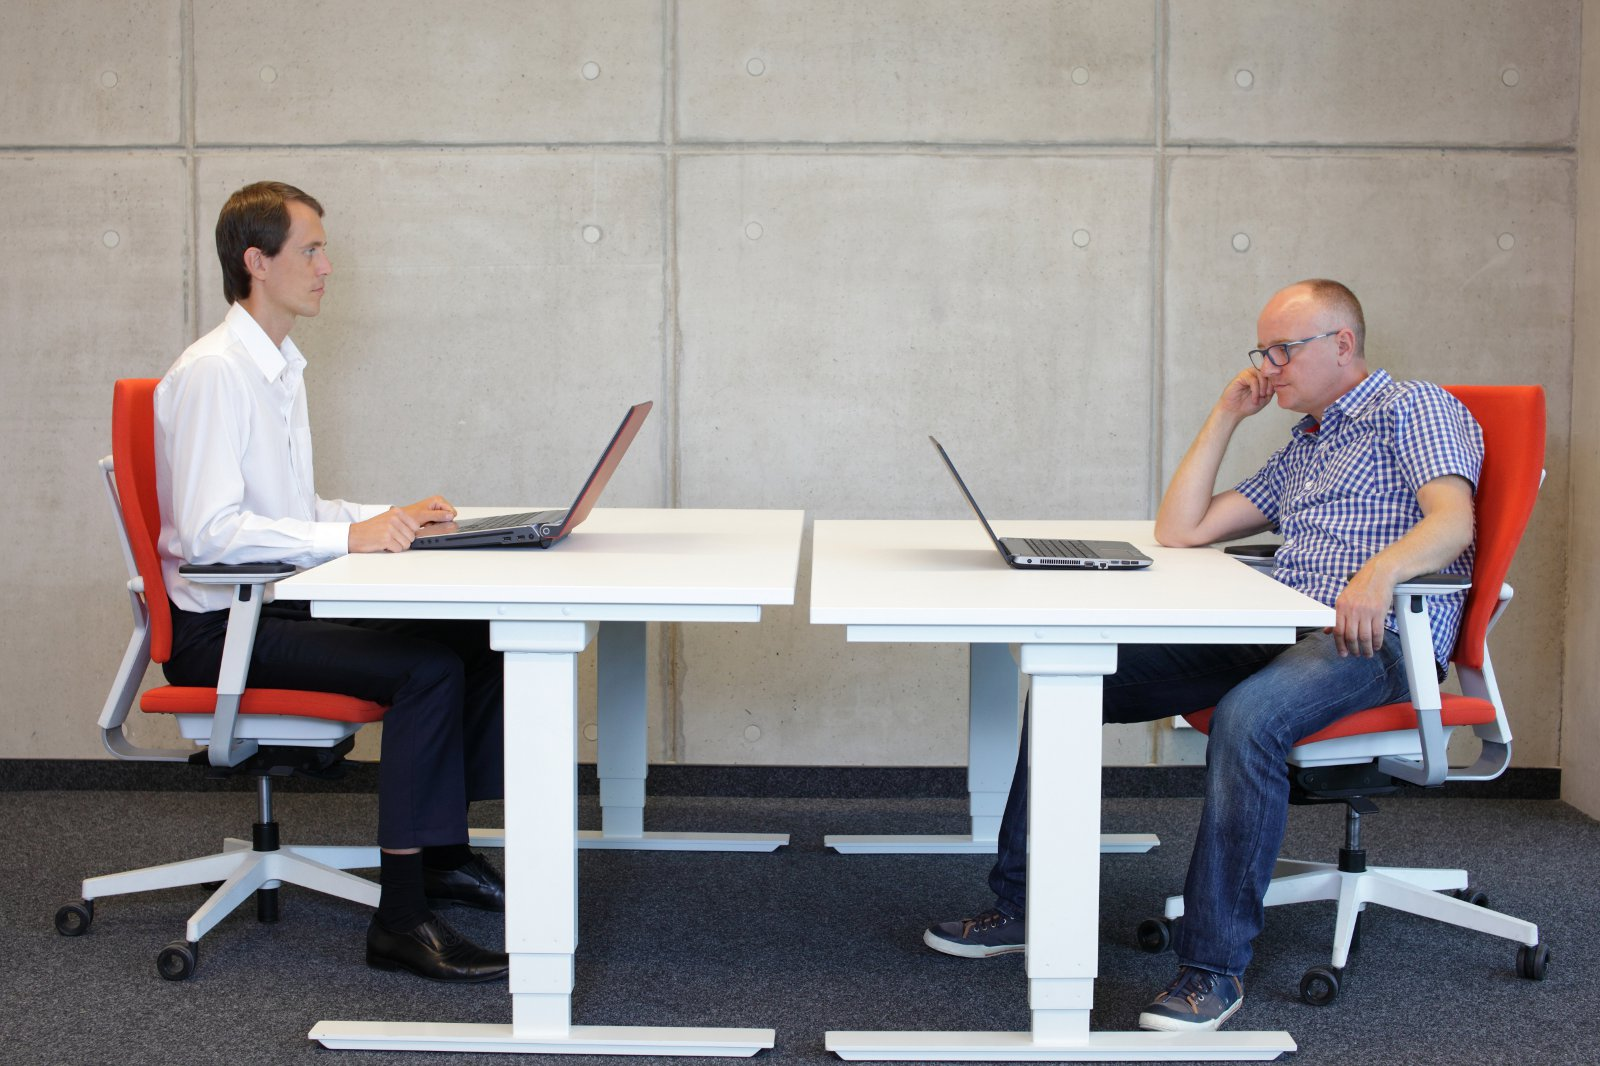 How to Prevent Lower Back Pain in the Workplace - On Site Wellbeing